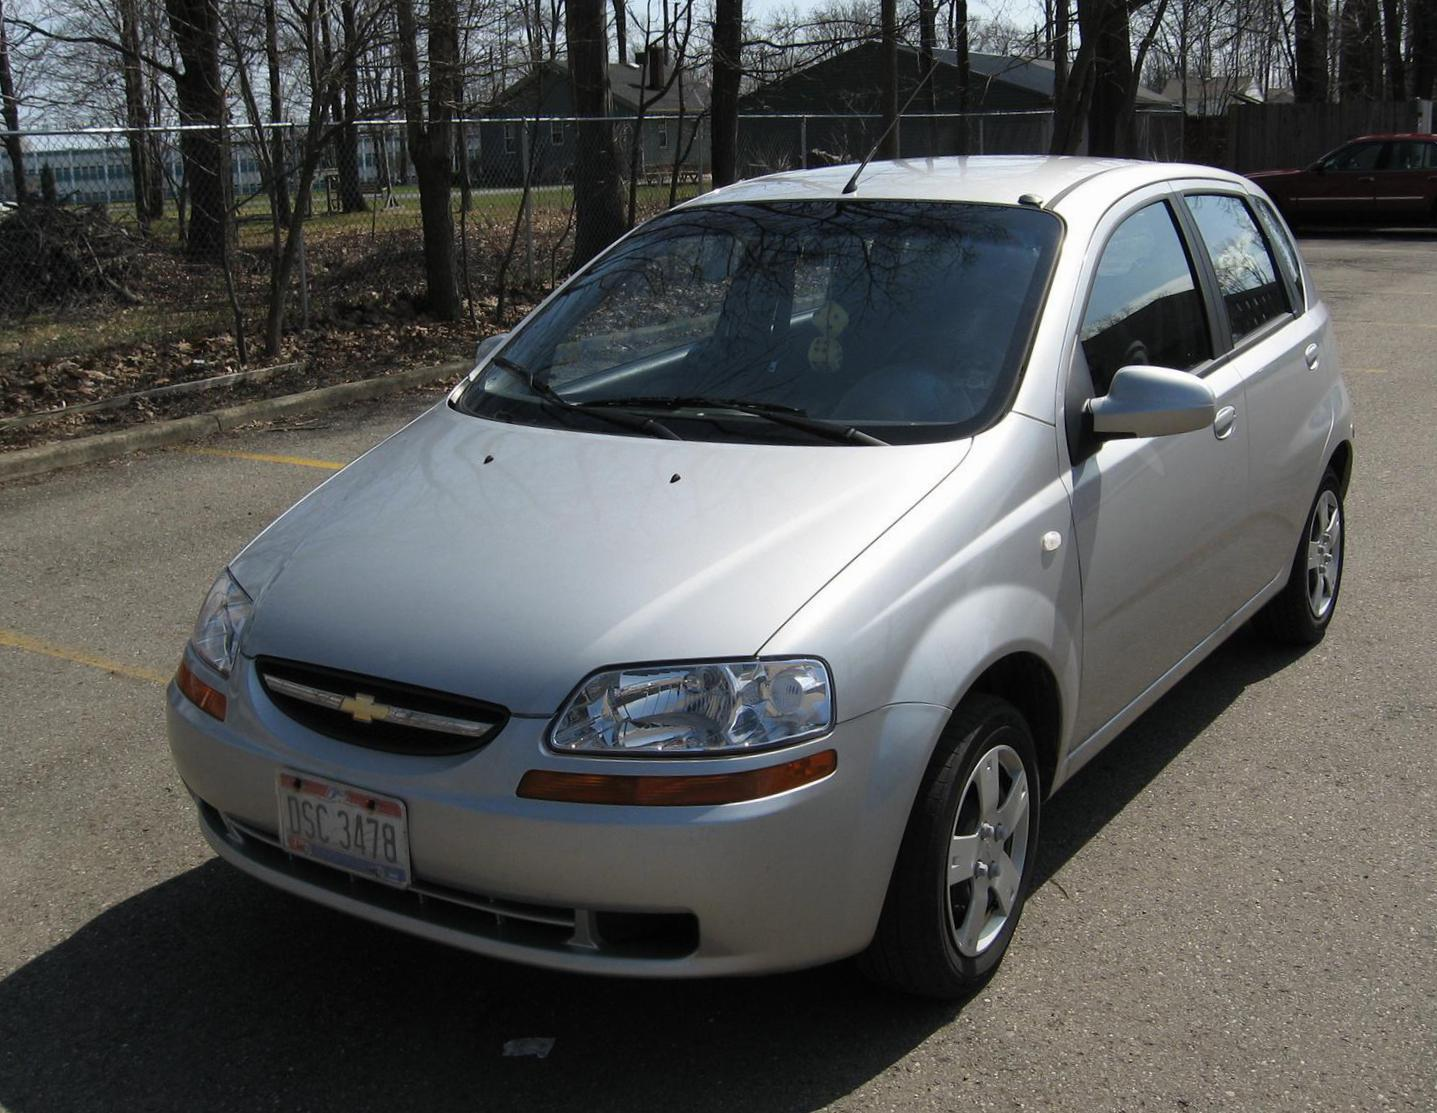 Chevrolet Aveo Specifications suv